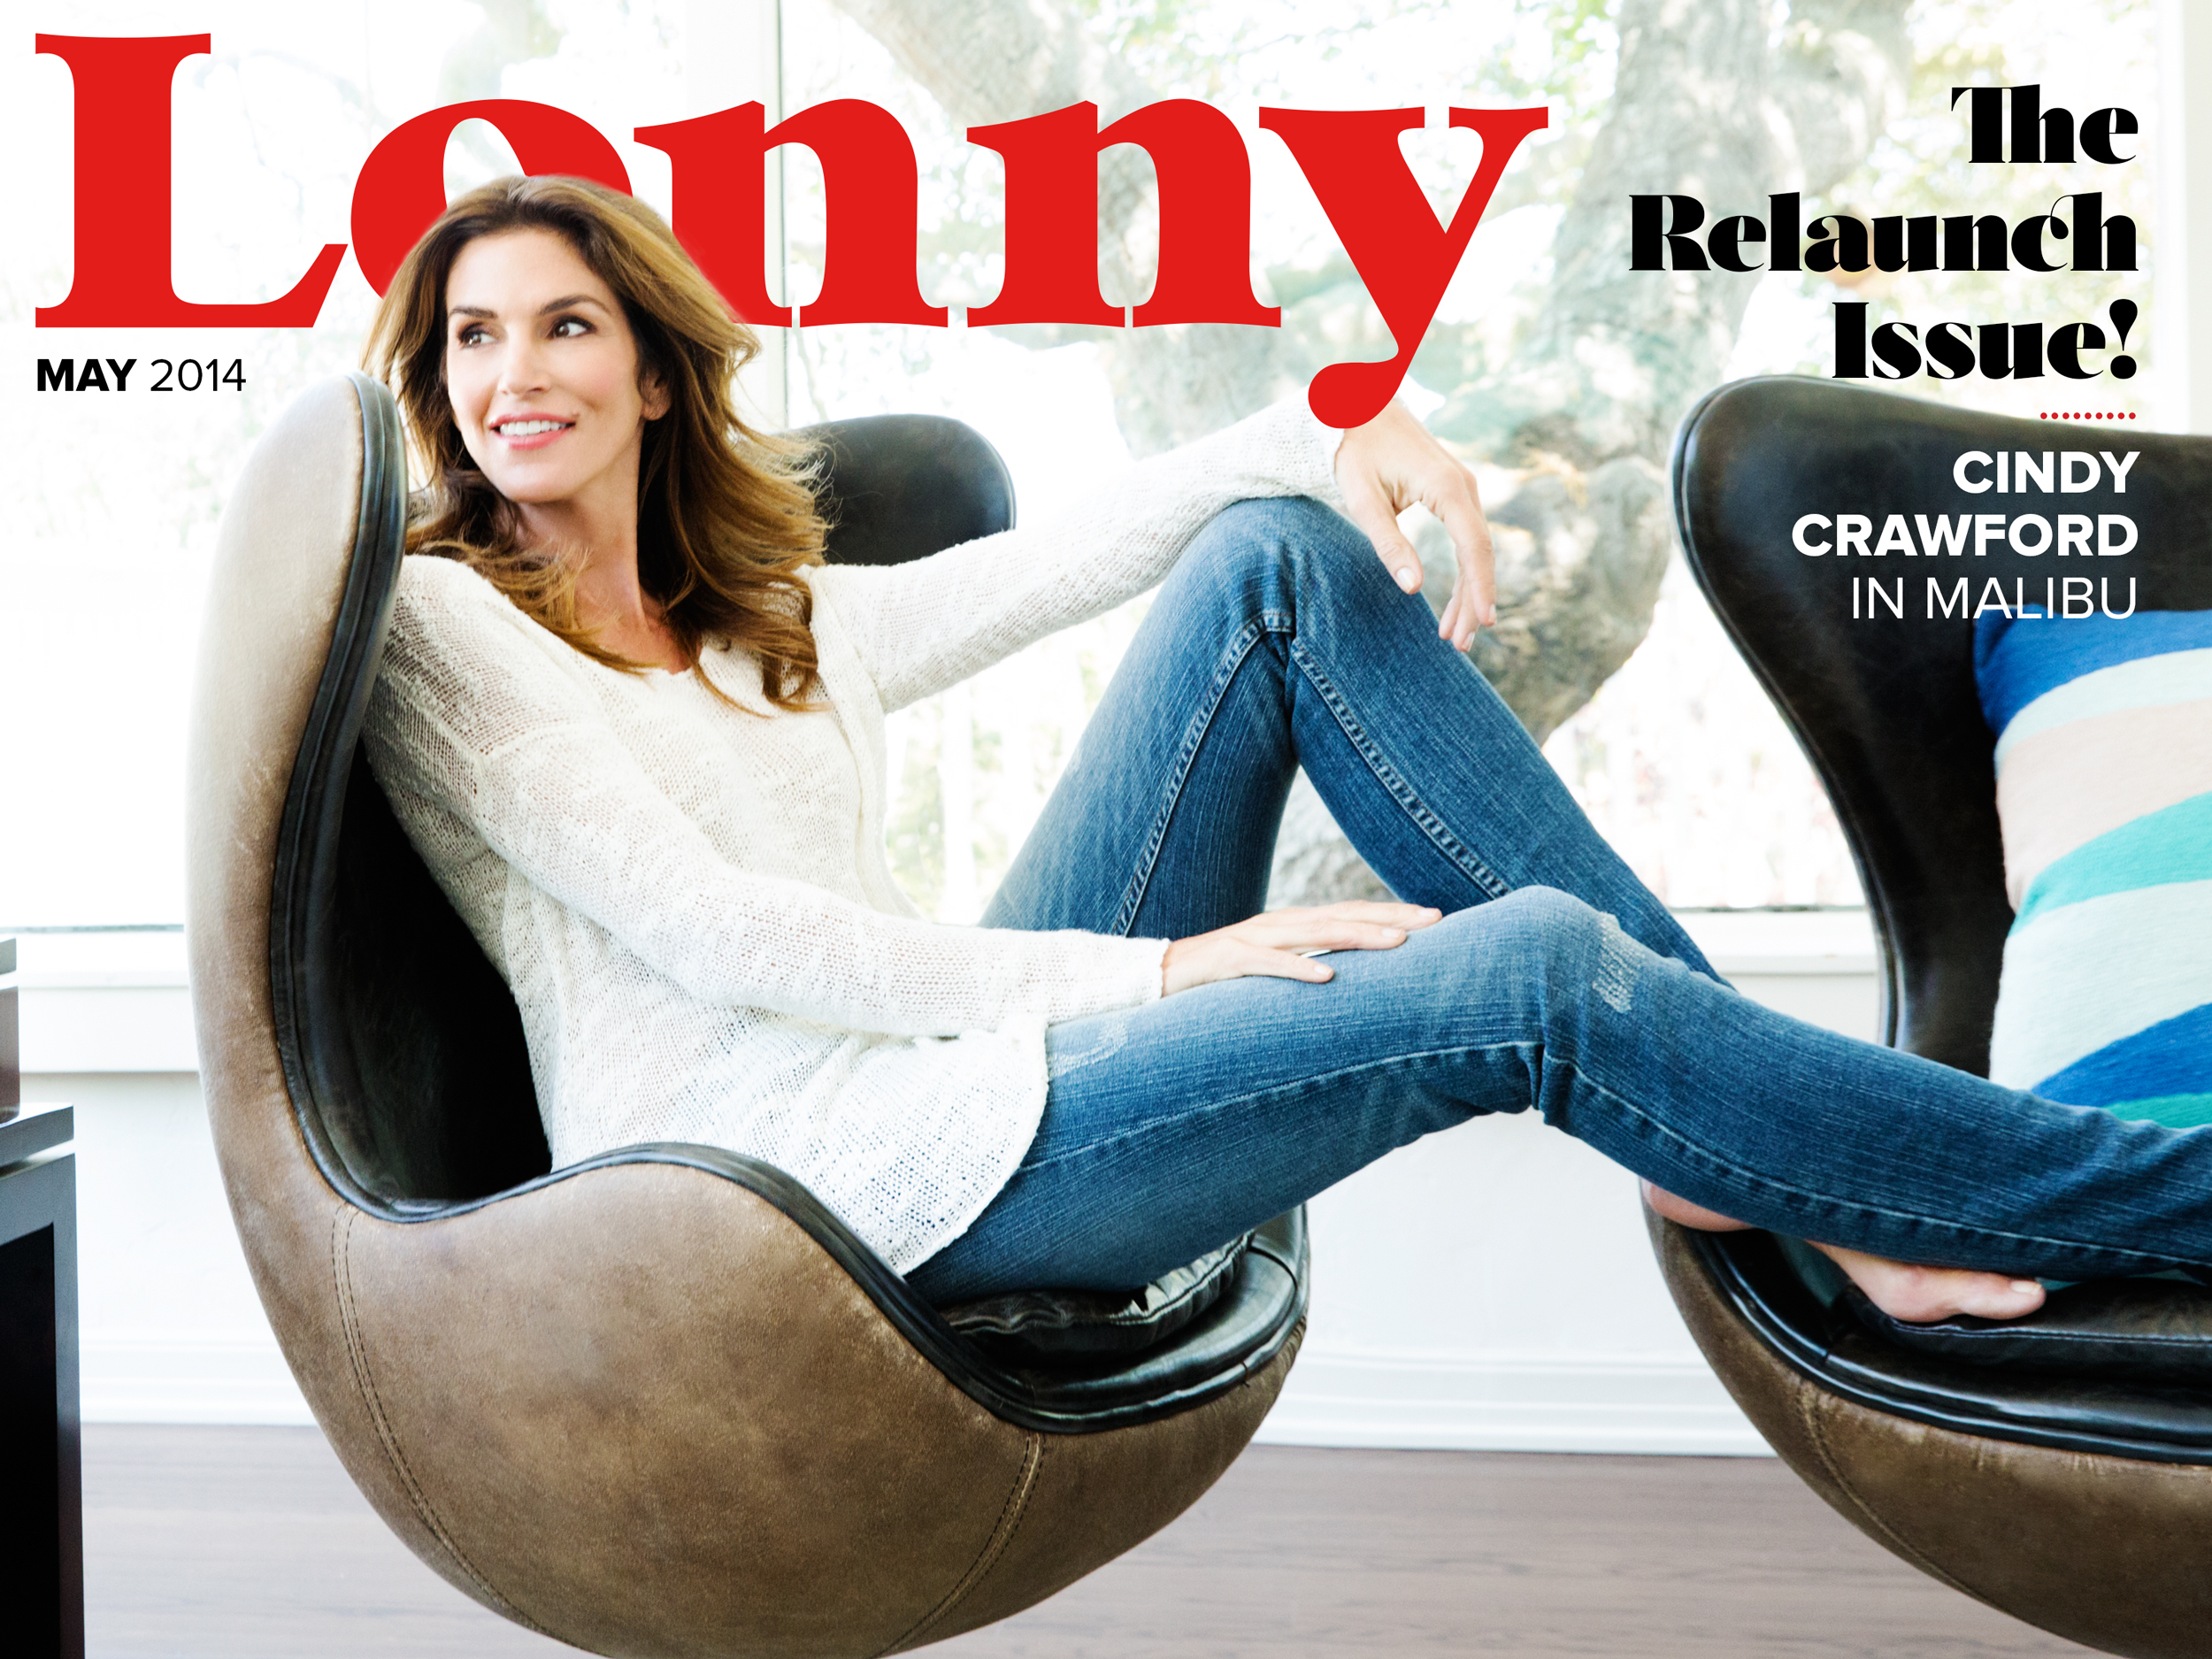 Lonny magazine launches today with a totally redesigned format for its May issue (Photo: Business Wire)